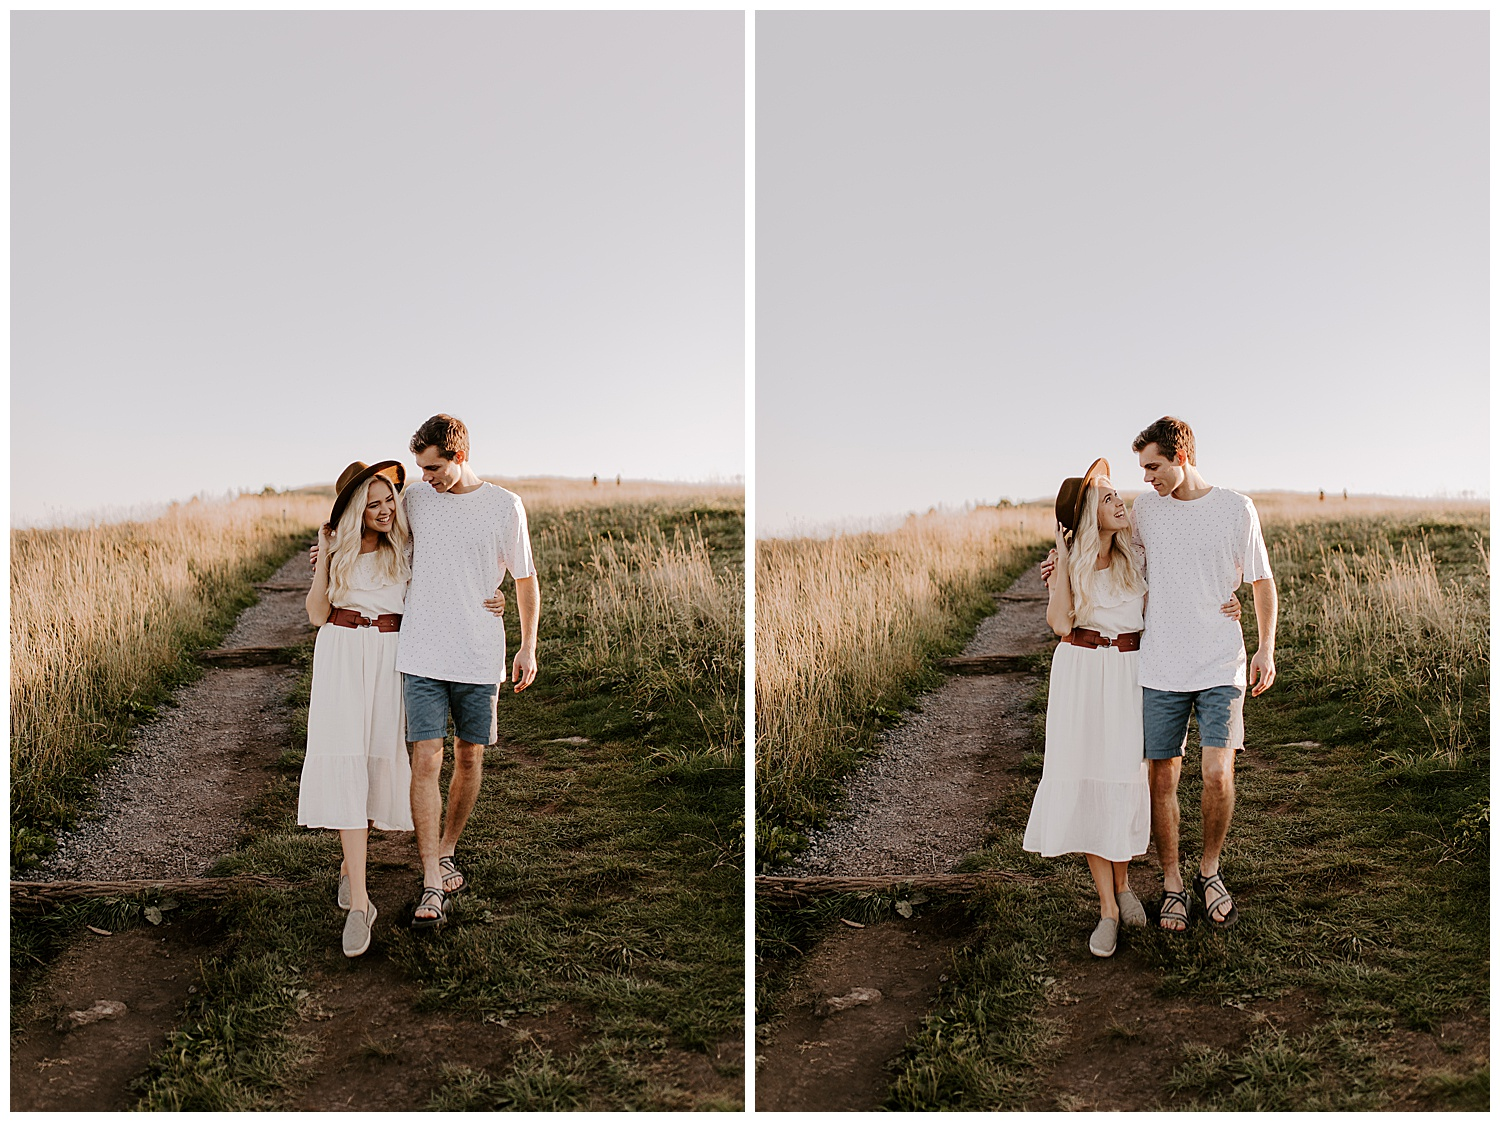 HANNAH_NICK_MAXPATCH_ENGAGEMENT2019-09-05_0042.jpg